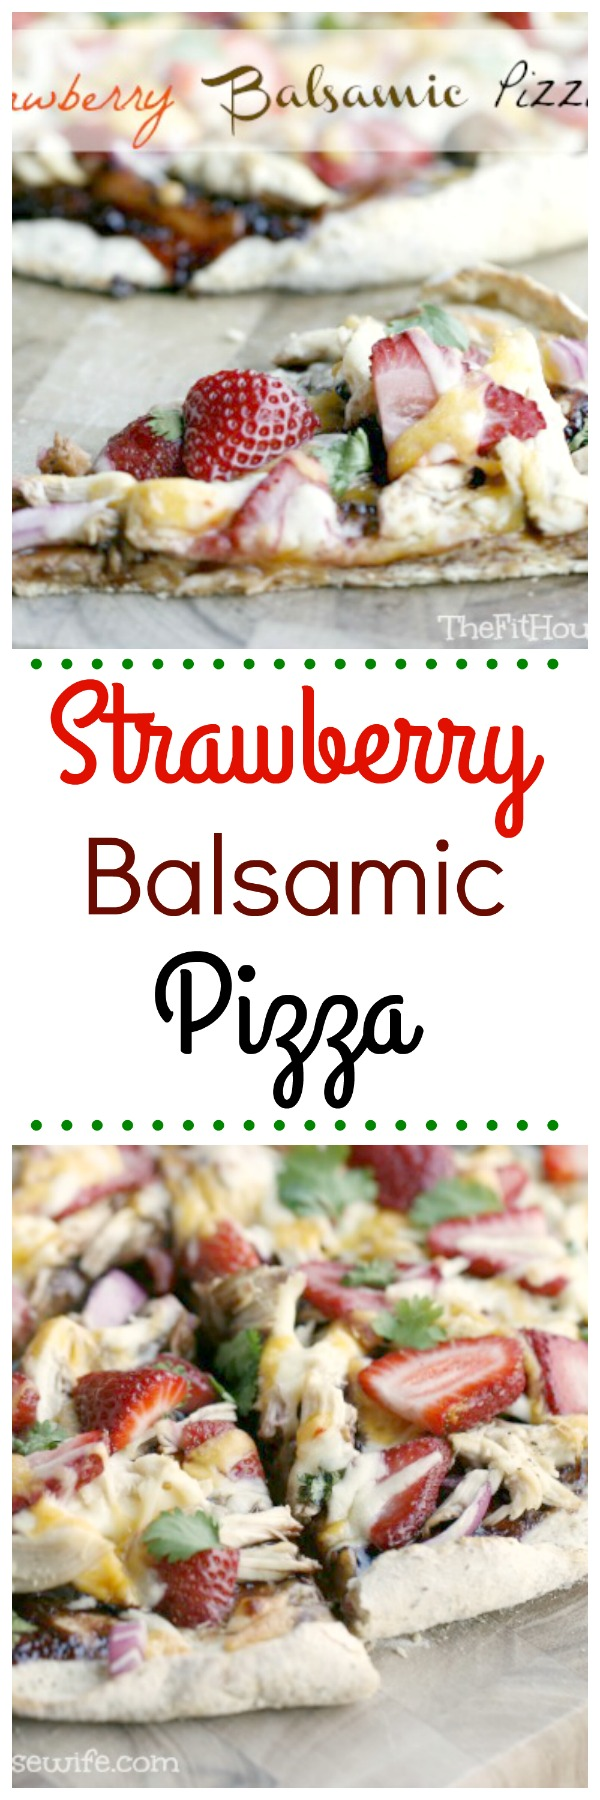 "Strawberry Balsamic Pizza. Strawberry jam and balsamic vinegar come together to make this pizza ""sauce!"" A sweet a savoury pizza that is sure to please everyone."